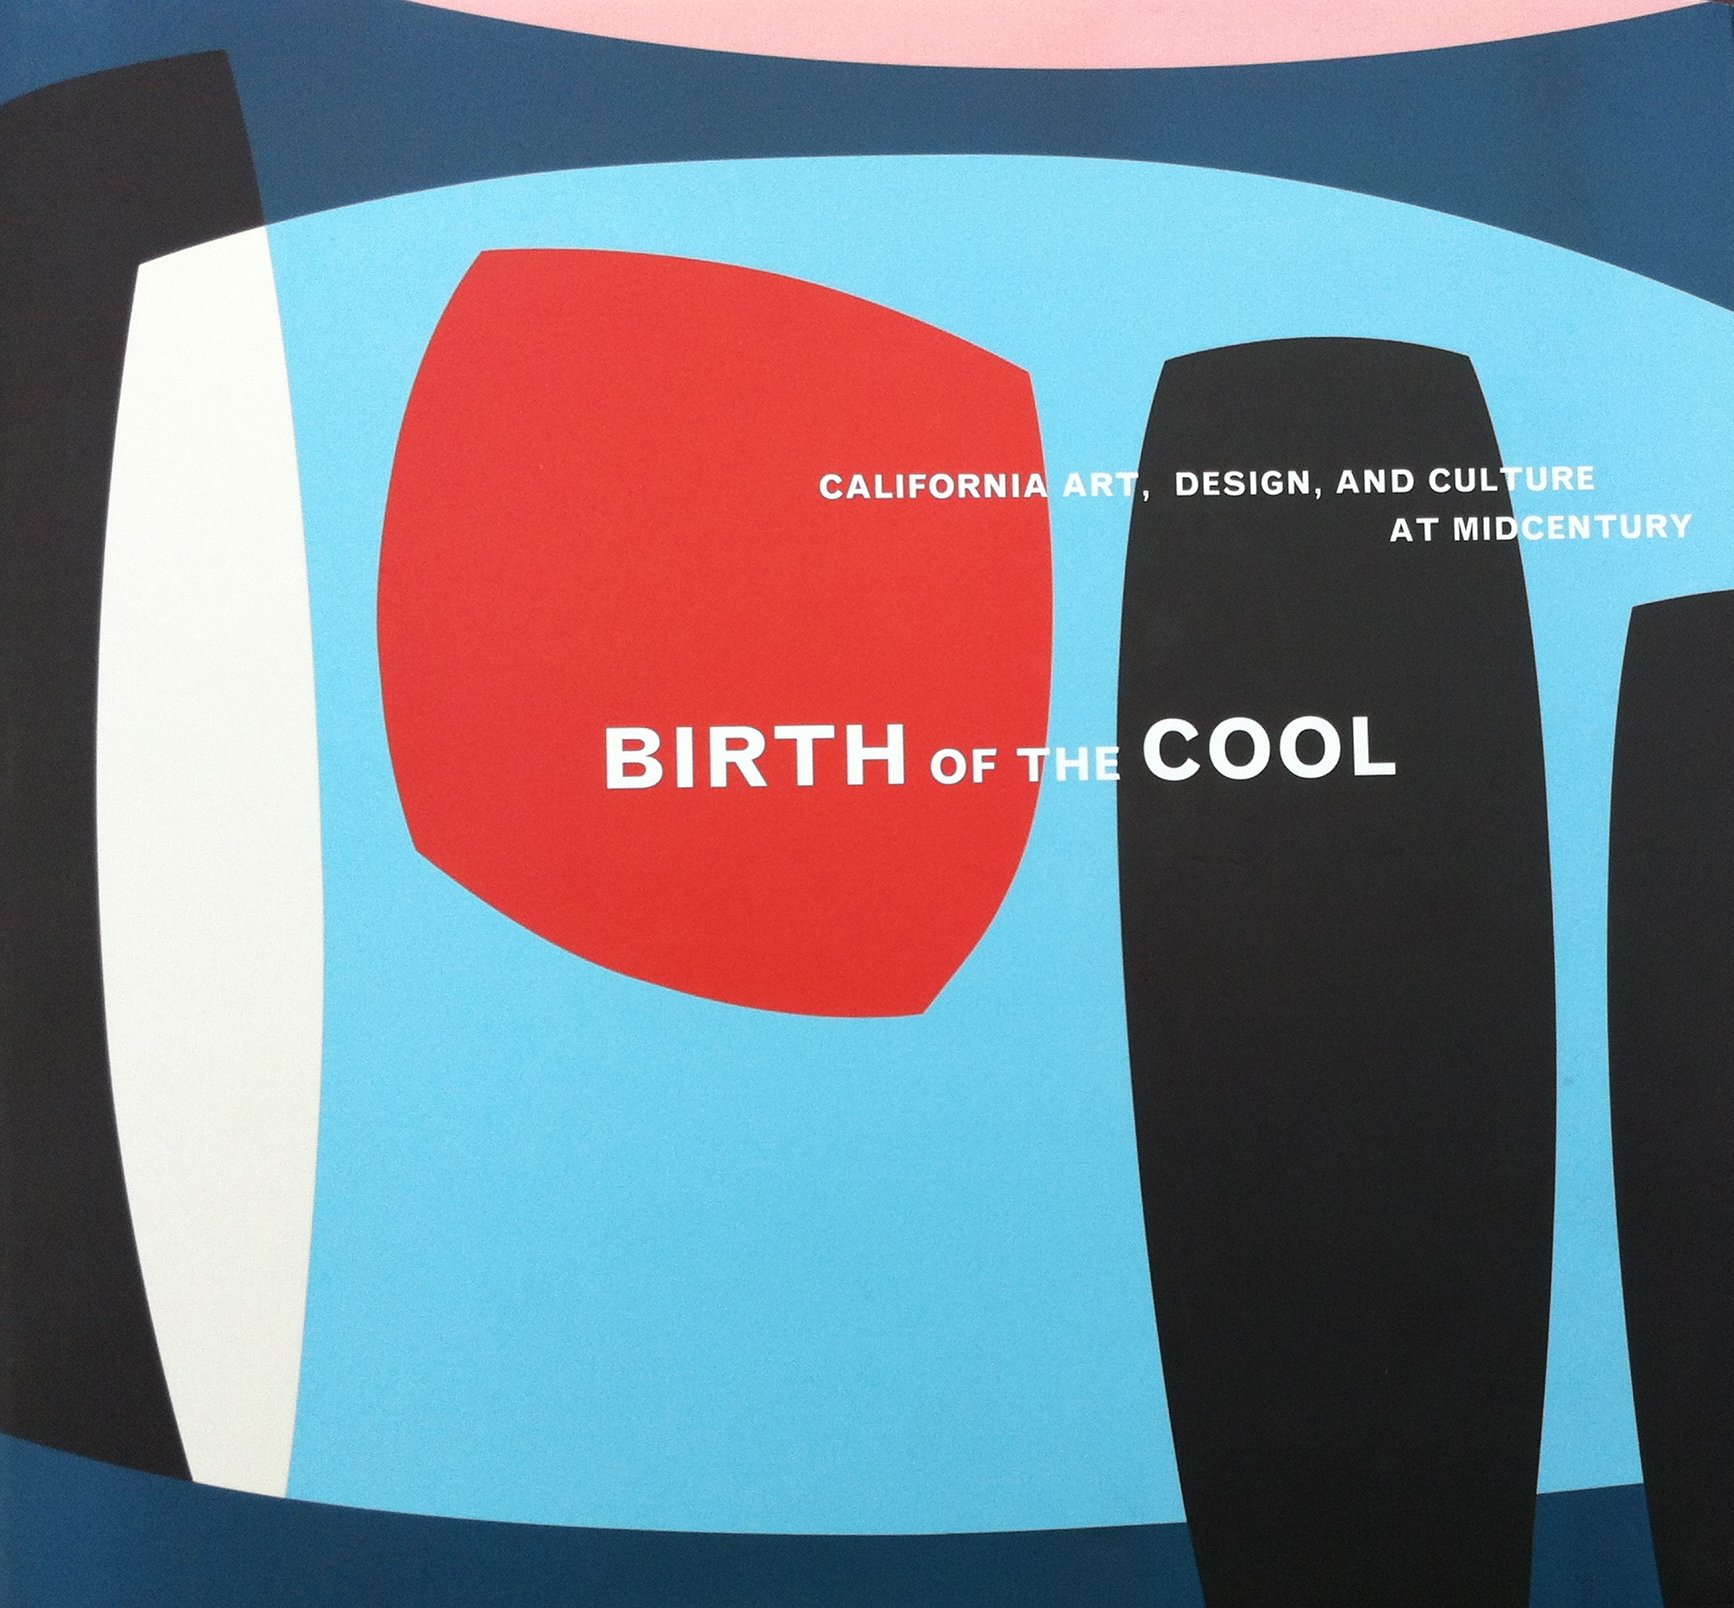 california cool simanaitis says birth of the cool california art design and culture at midcentury curated by elizabeth armstrong essays and contributions by nine others orange county